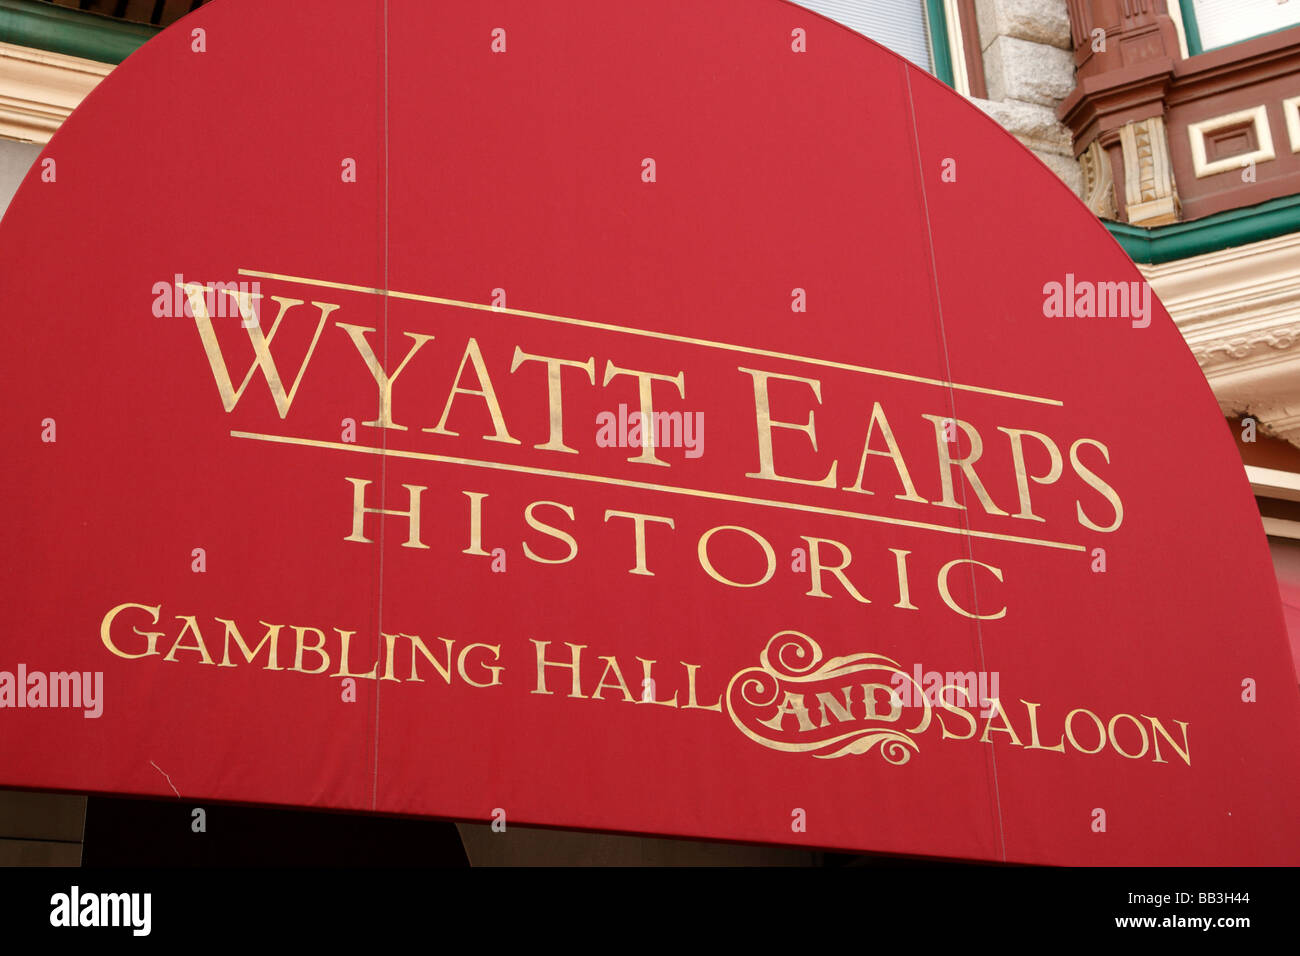 georges on fifth avenue former home of wyatt earps gambling hall & saloon gaslamp quarter san diego california - Stock Image